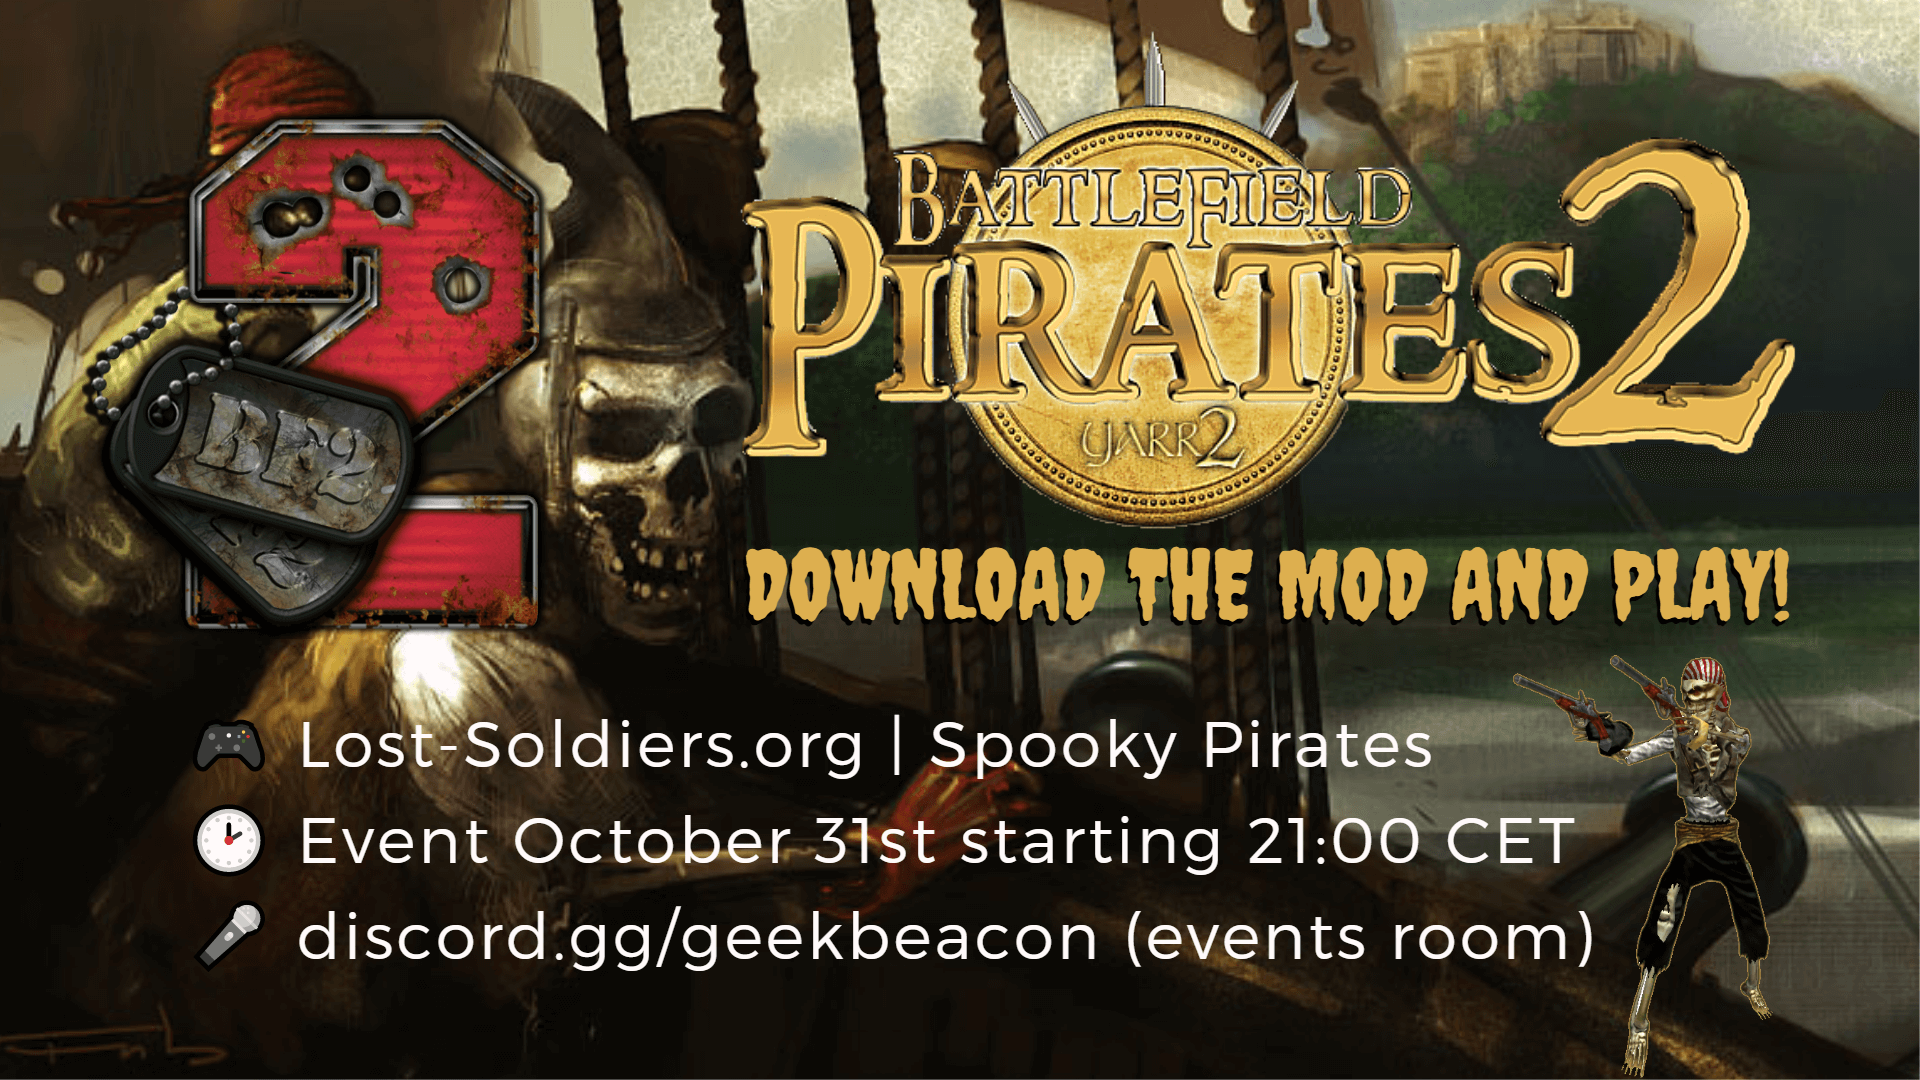 https://lost-soldiers.org/images/news-pics/Halloween-Pirates-Event-2020-min.png